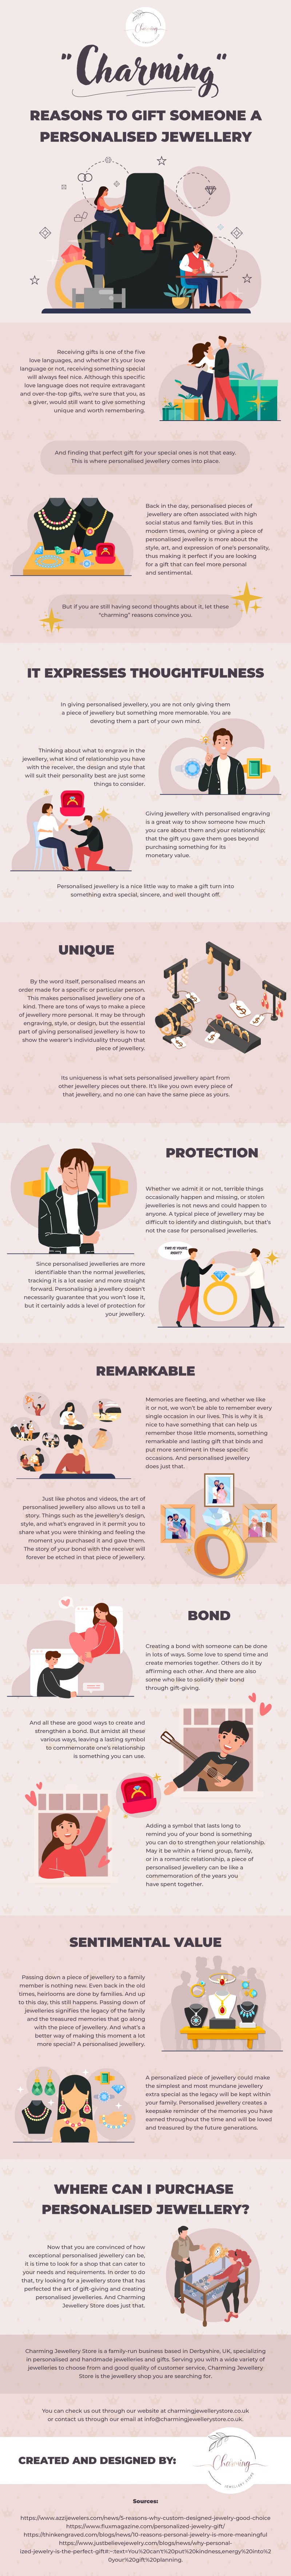 reason-to-gift-someone-personalised-jewellery-infographic